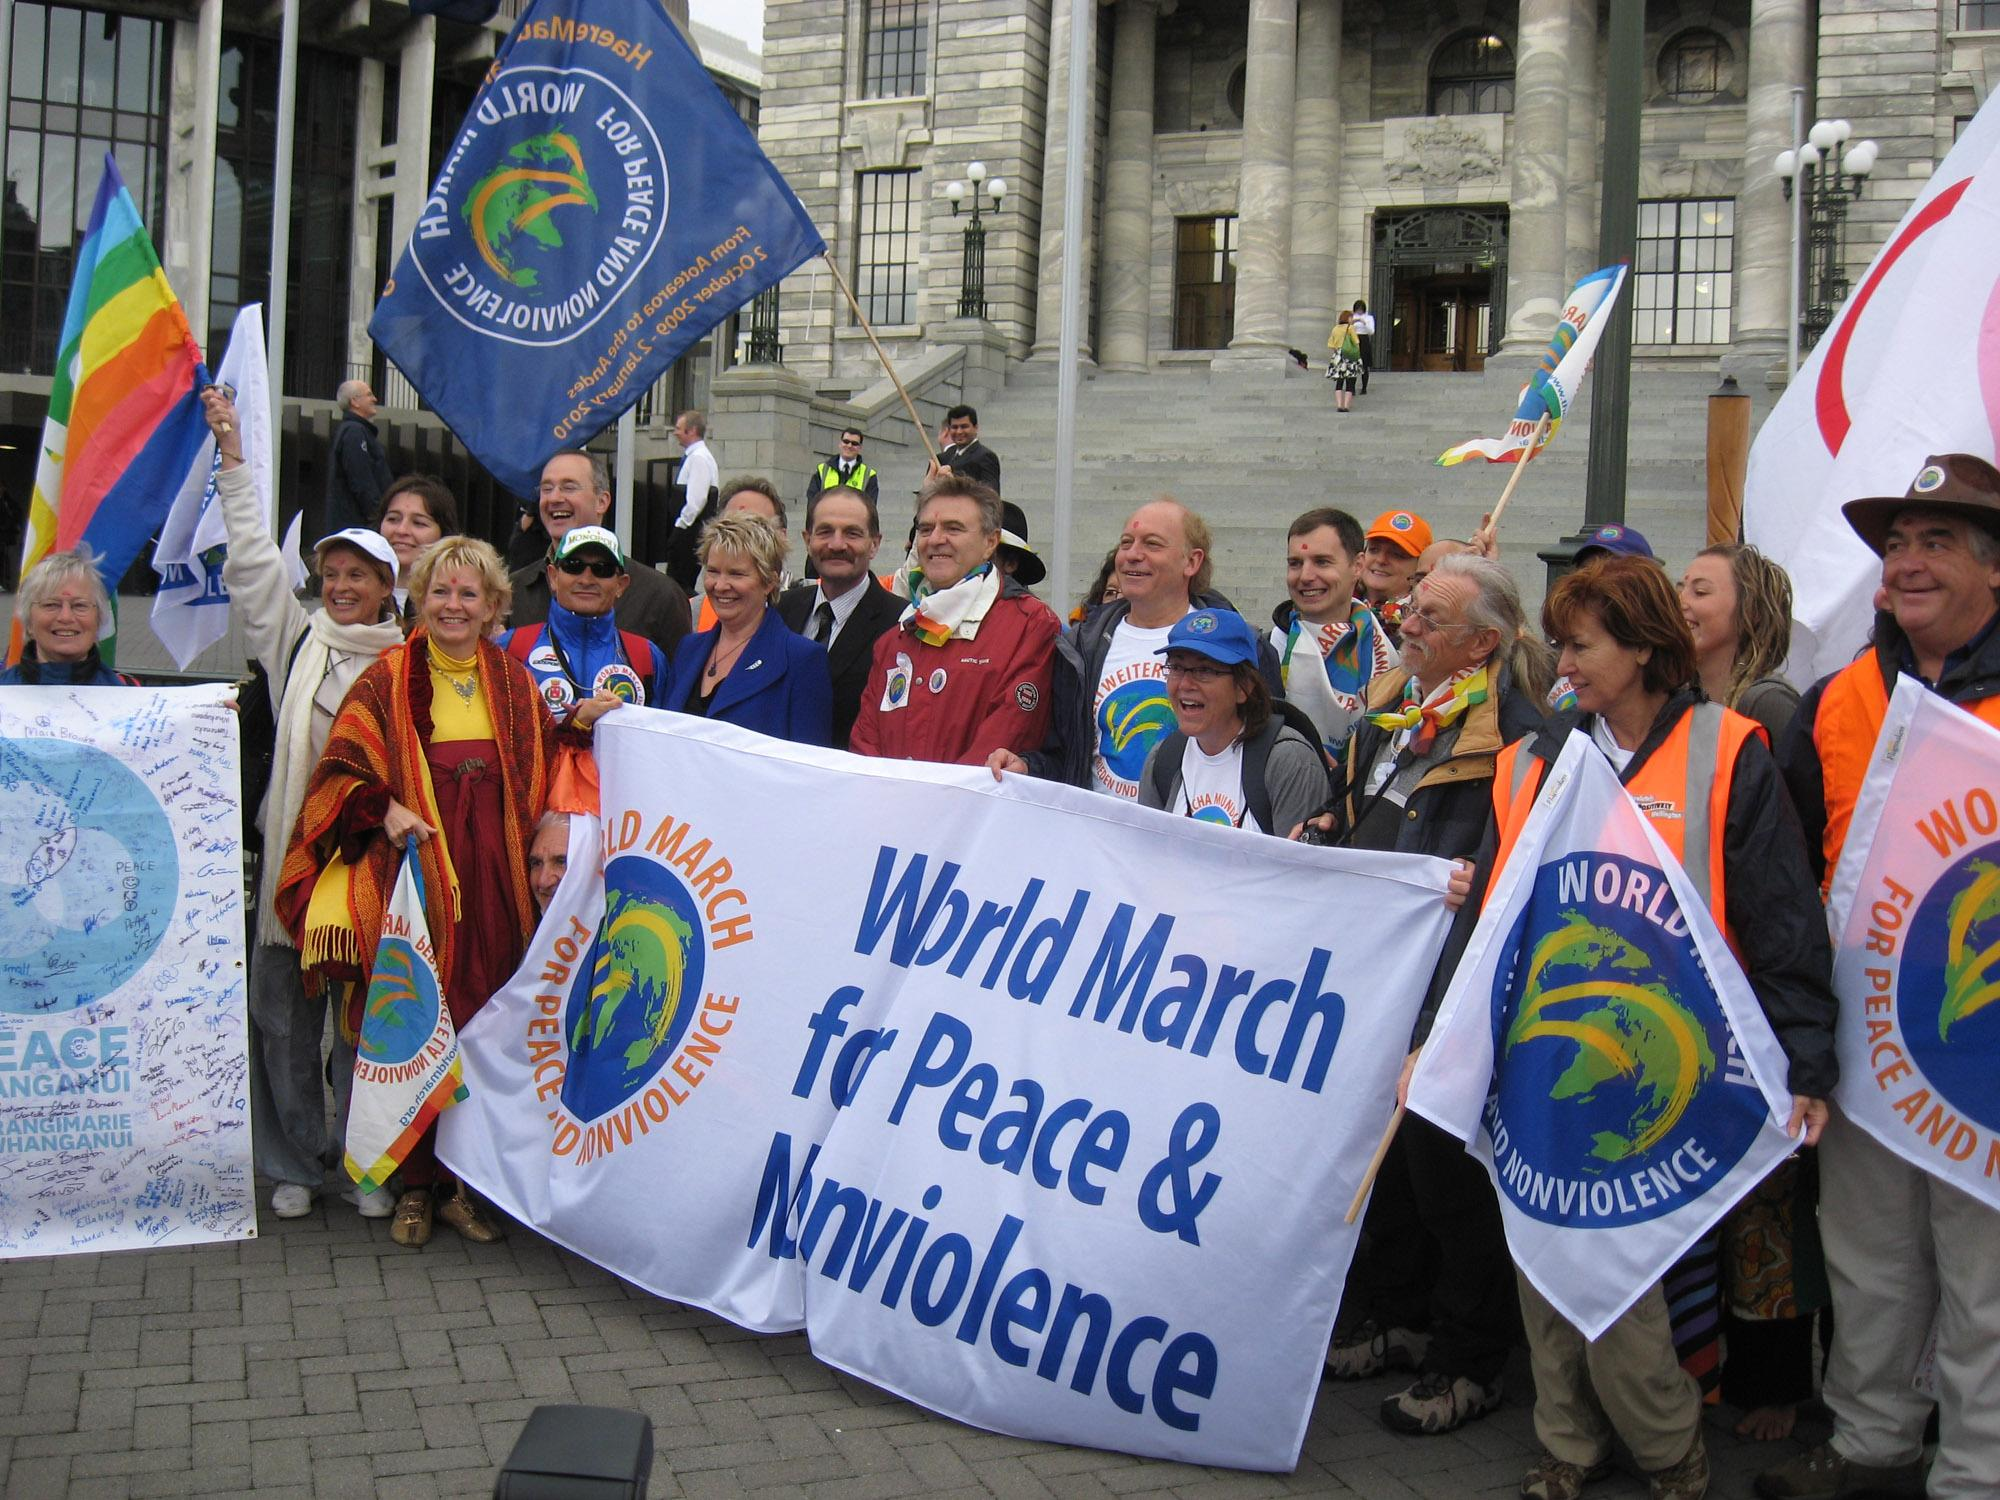 La Nueva Espiritualidad: World March for Peace Begins in ...March For Peace